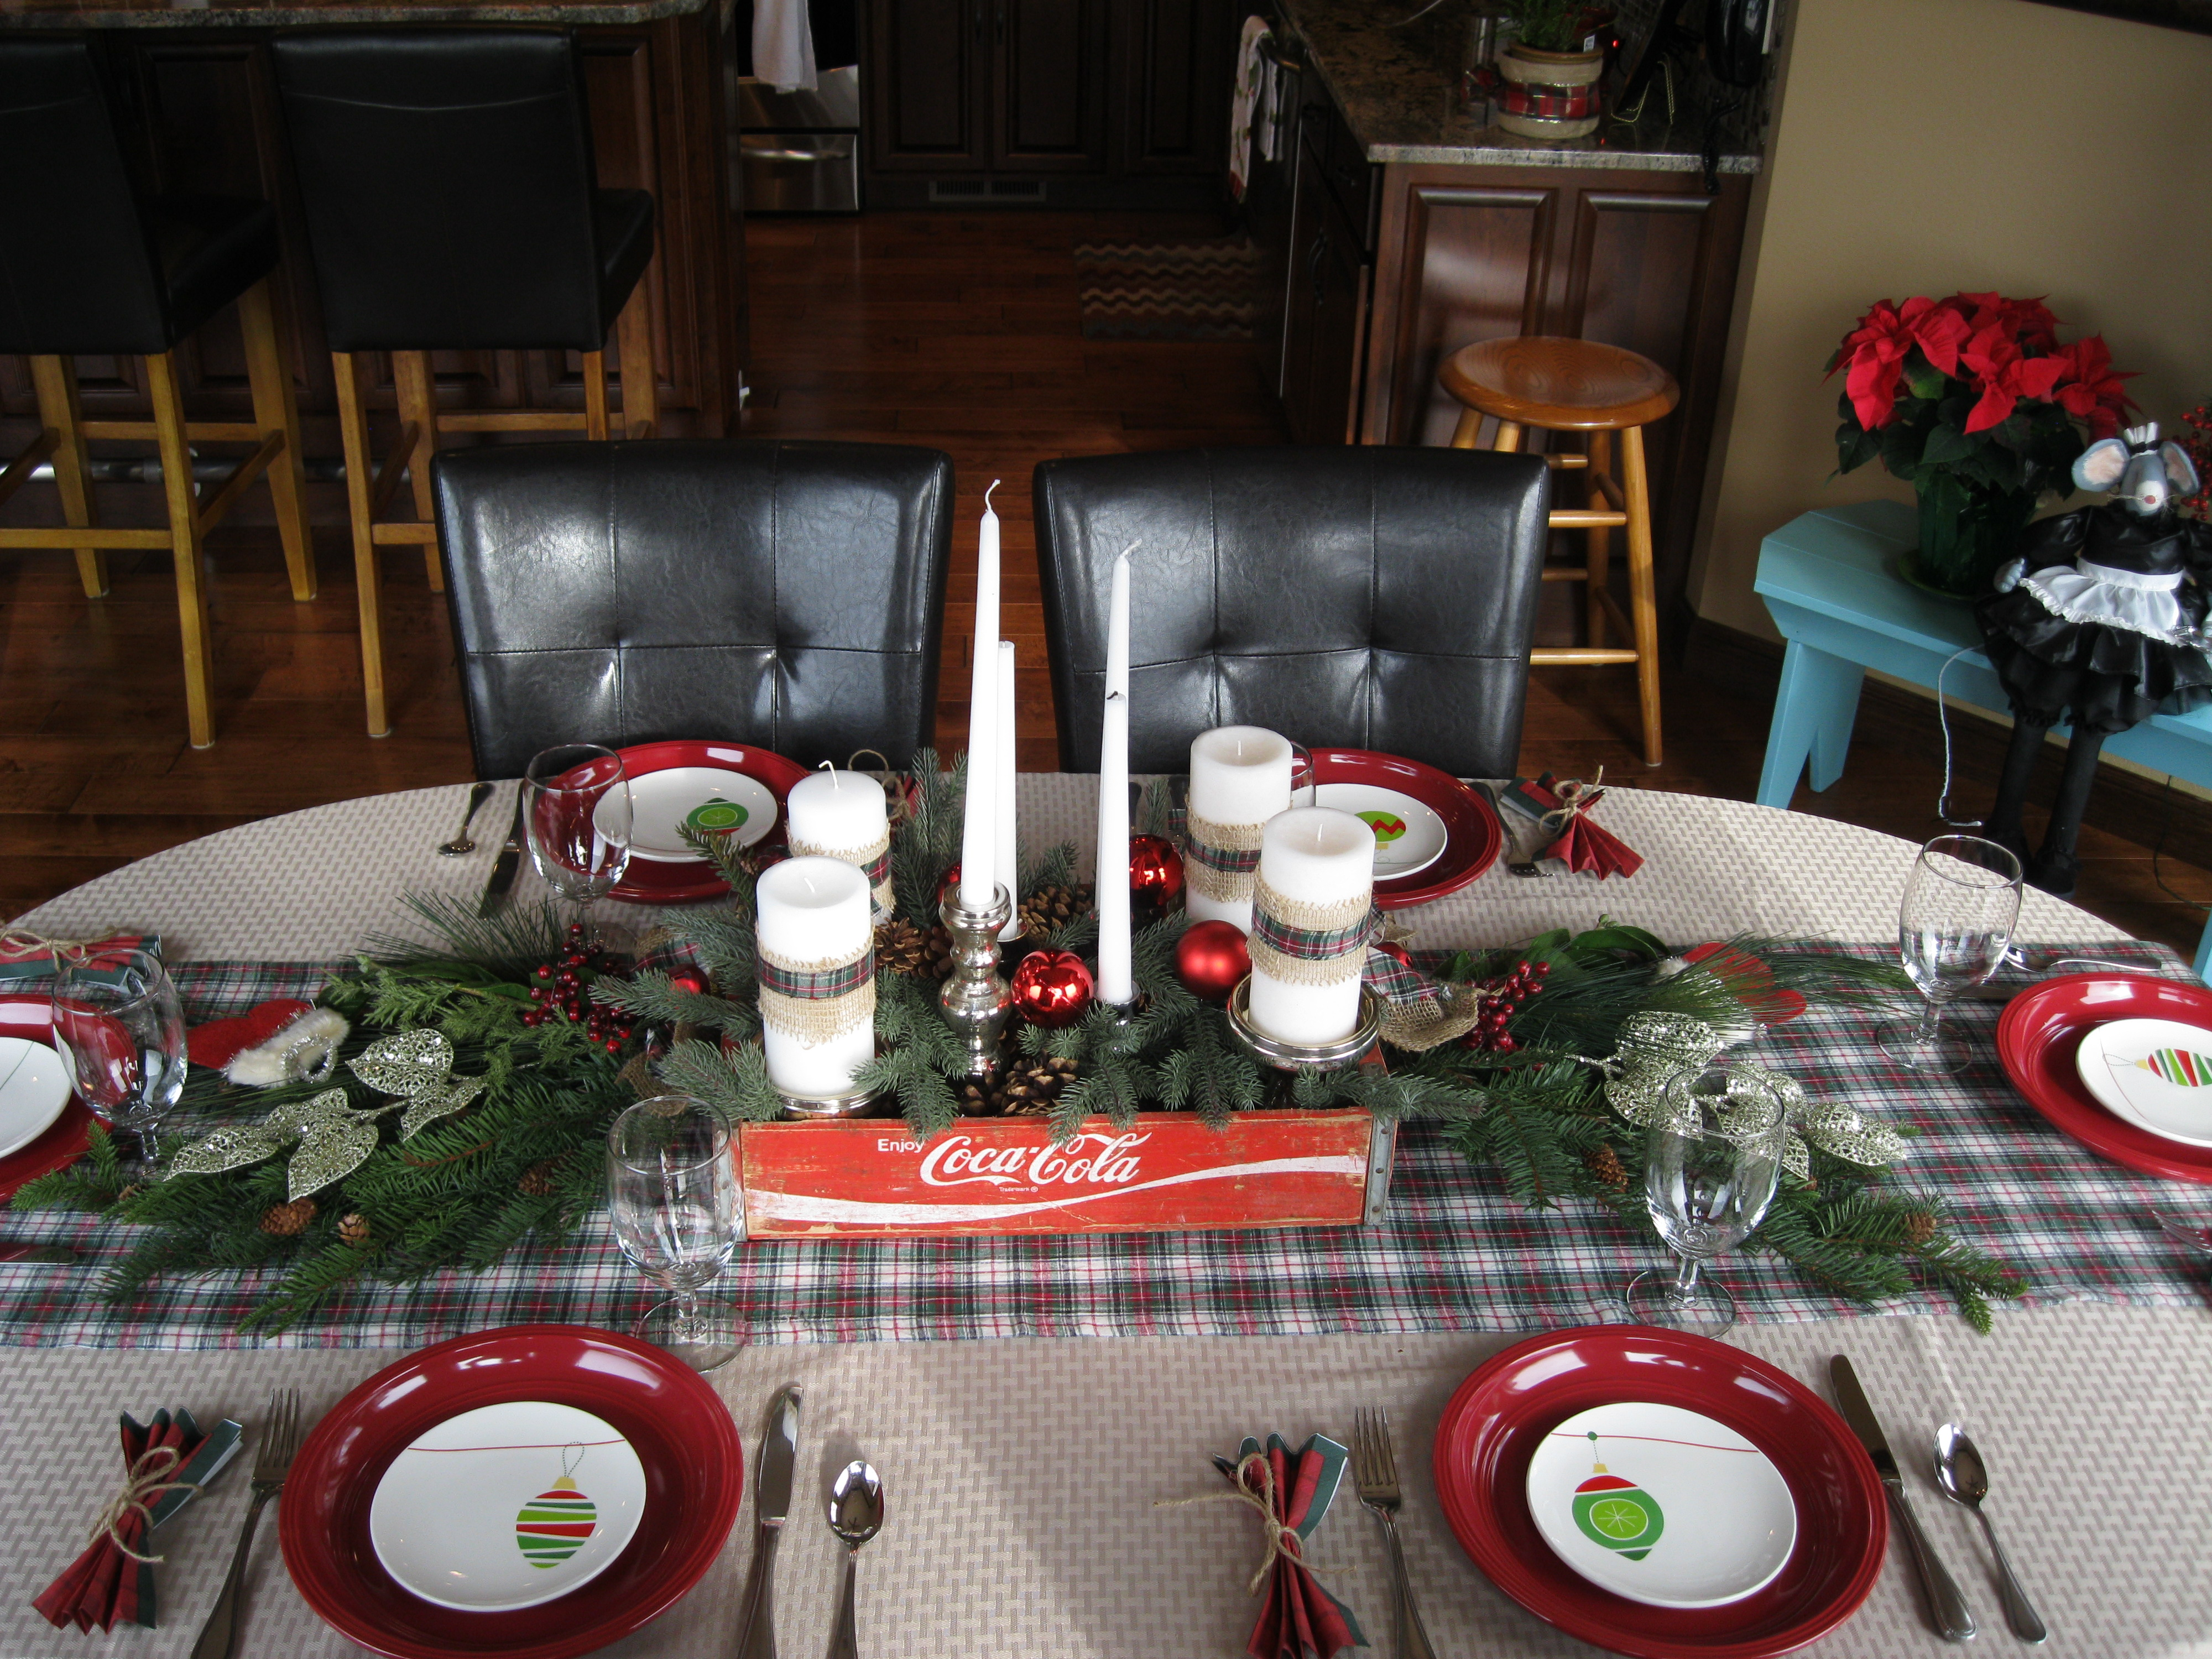 one of my favorite parts of any holiday or party is setting a fun table